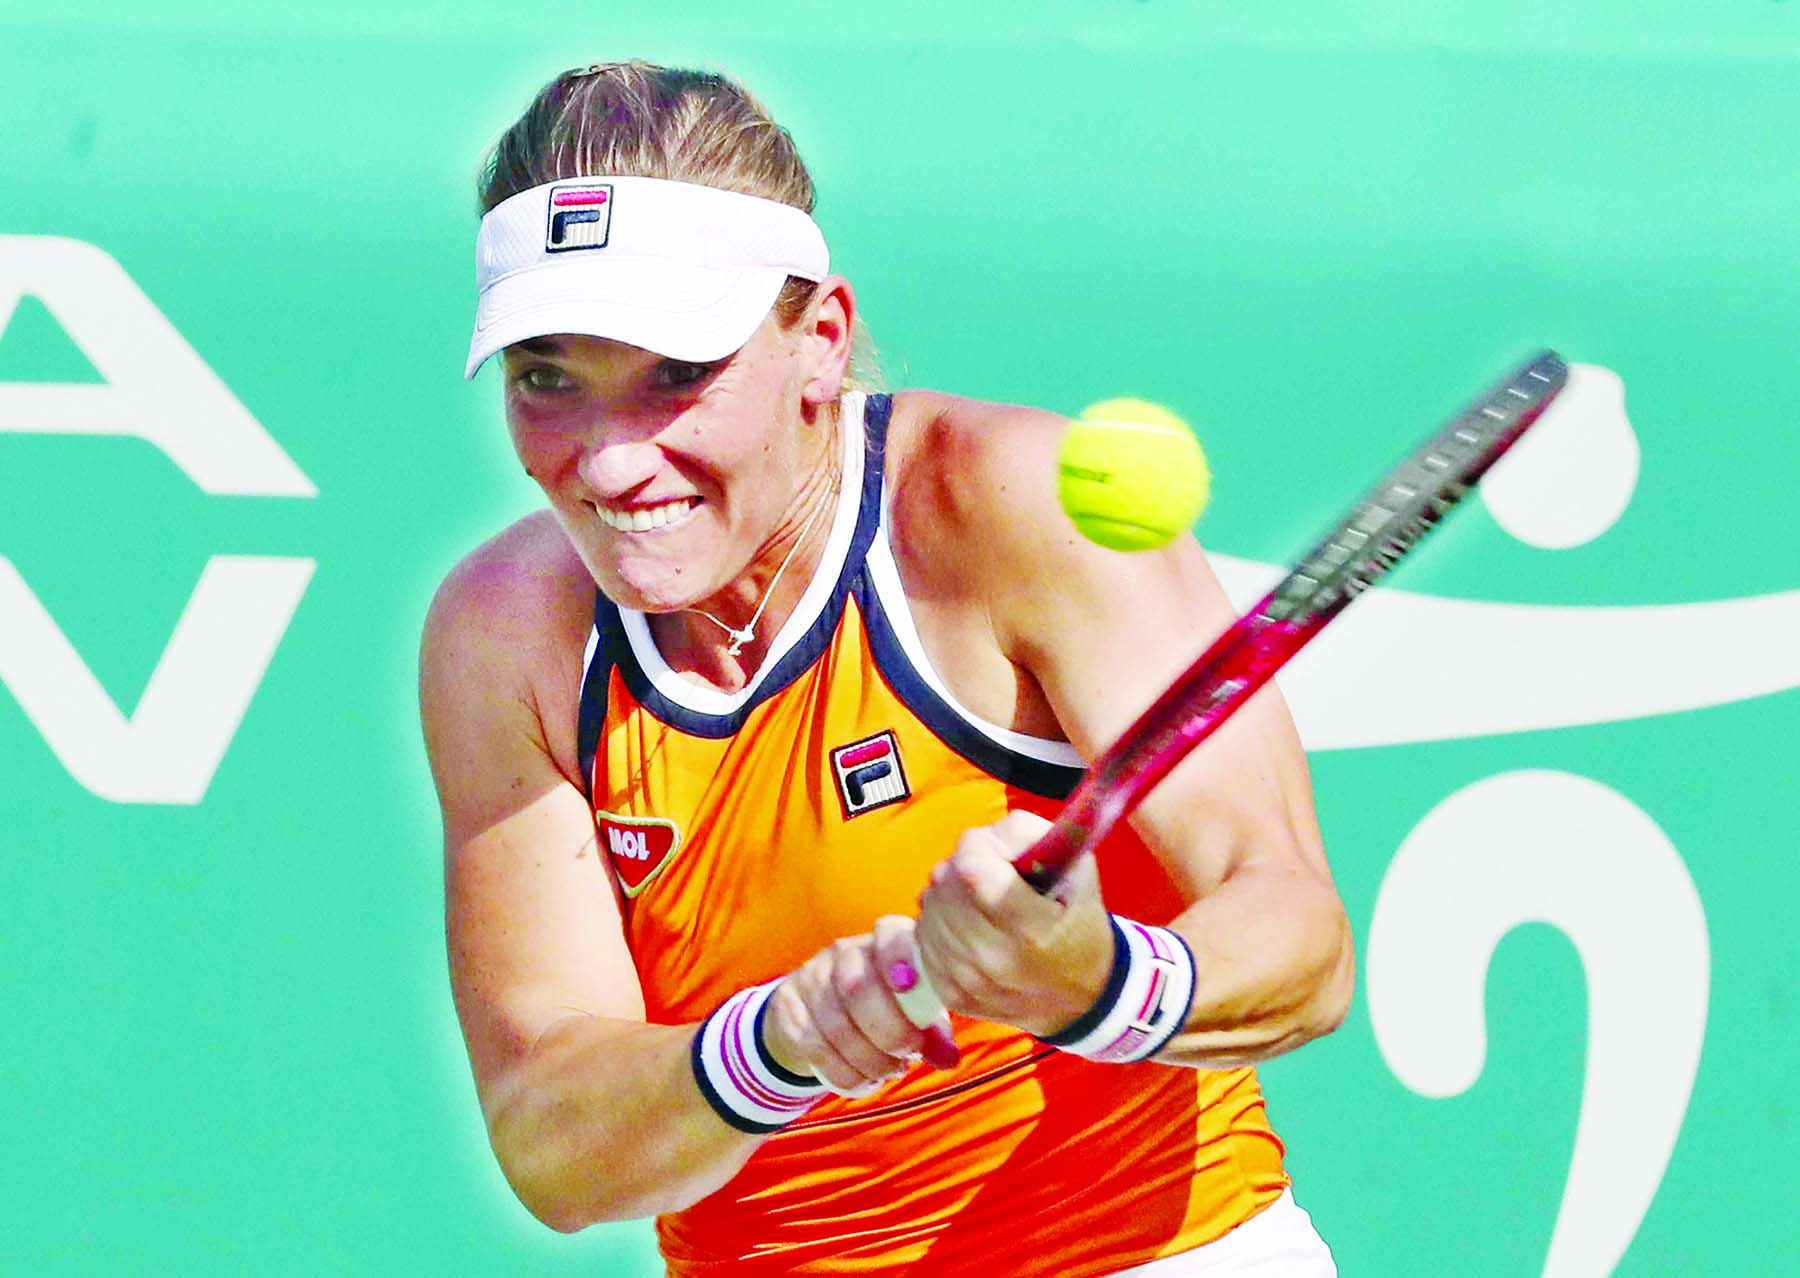 Timea Babos of Hungary, returns a shot to Karolina Muchova of the Czech Republic, during their second round match of the Korea Open tennis championships in Seoul, South Korea on Thursday.